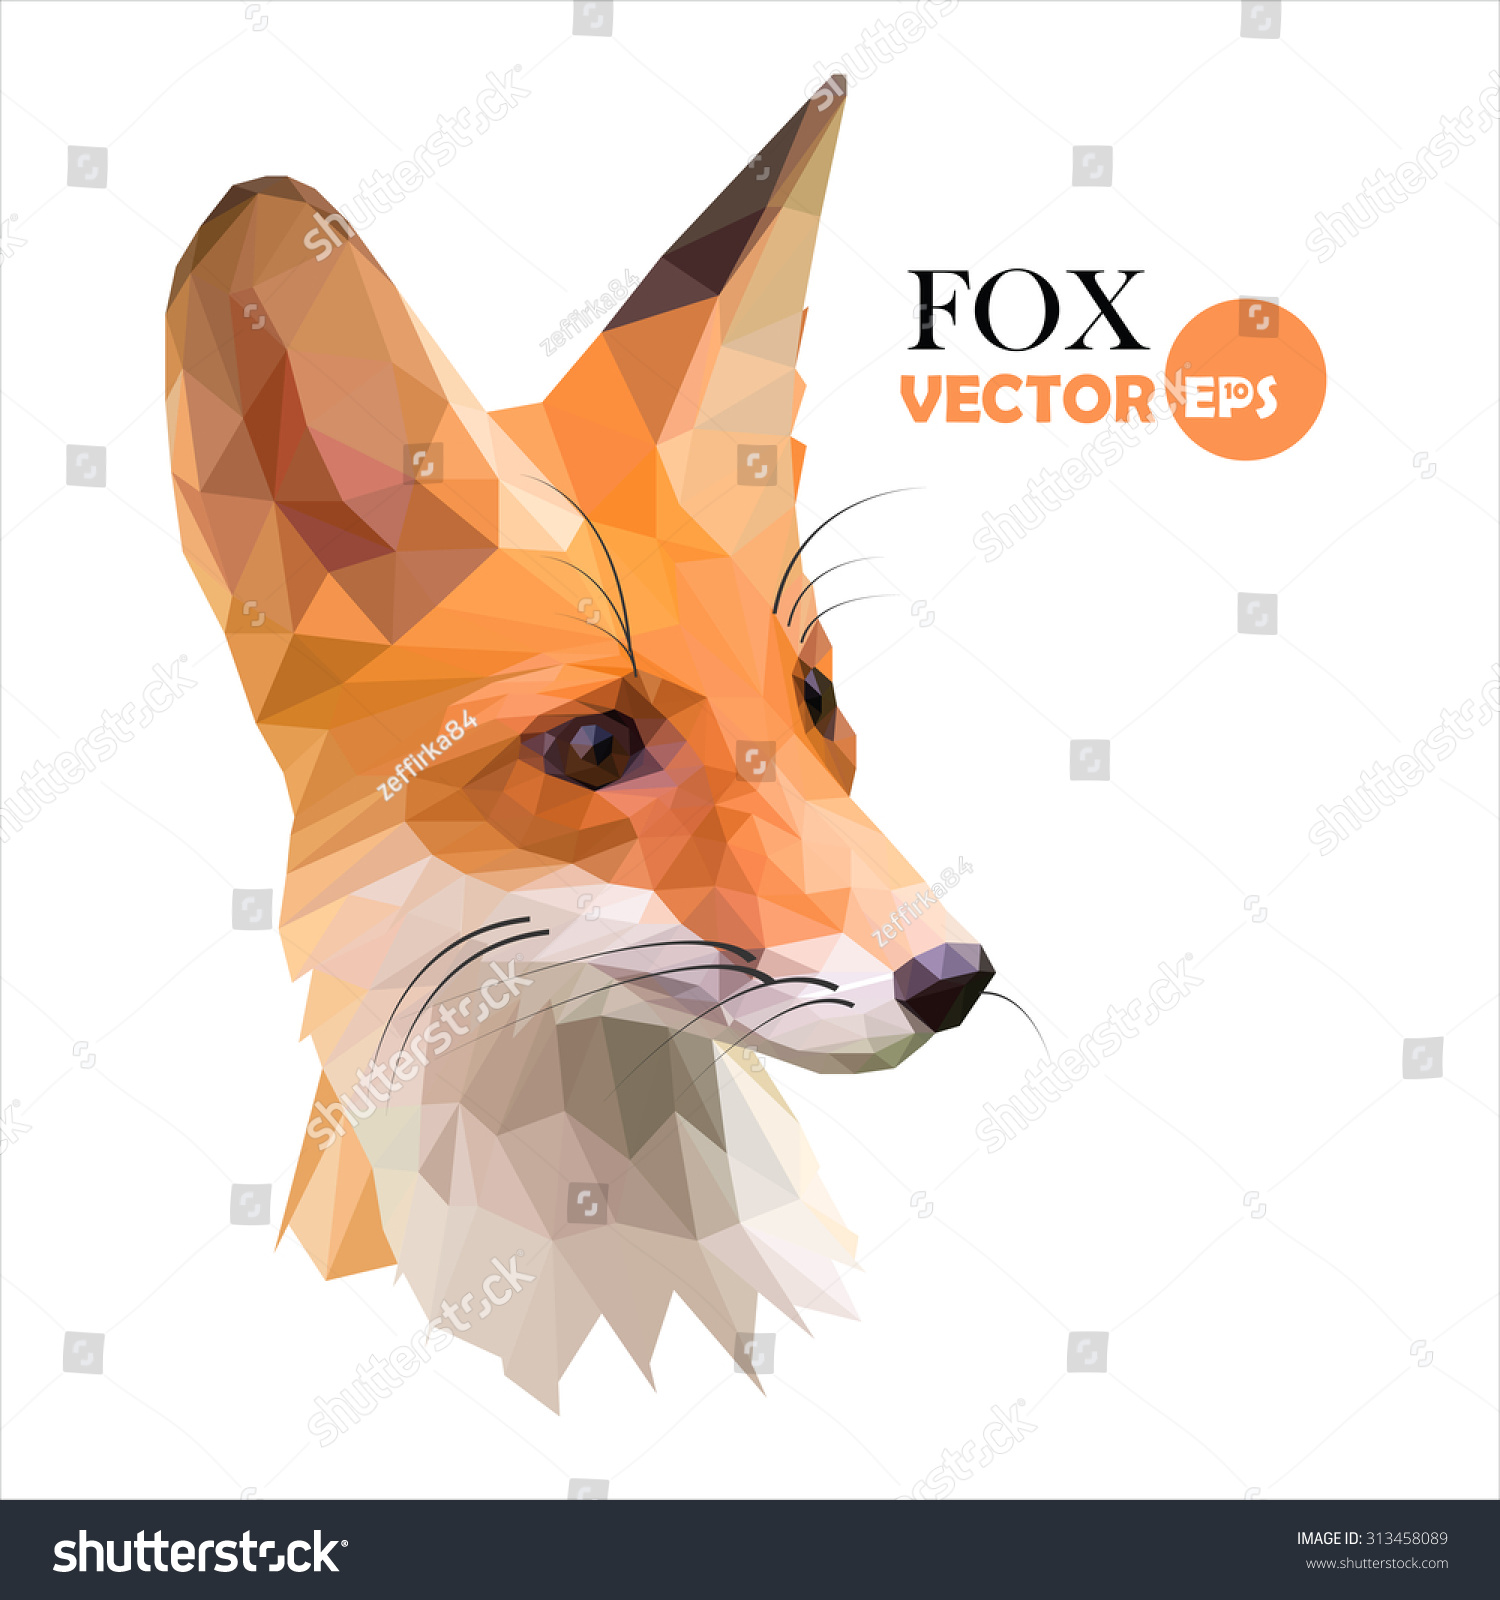 Abstract Fox Art Fox Red Foxes Low Polygon Style Stock Vector 313458089